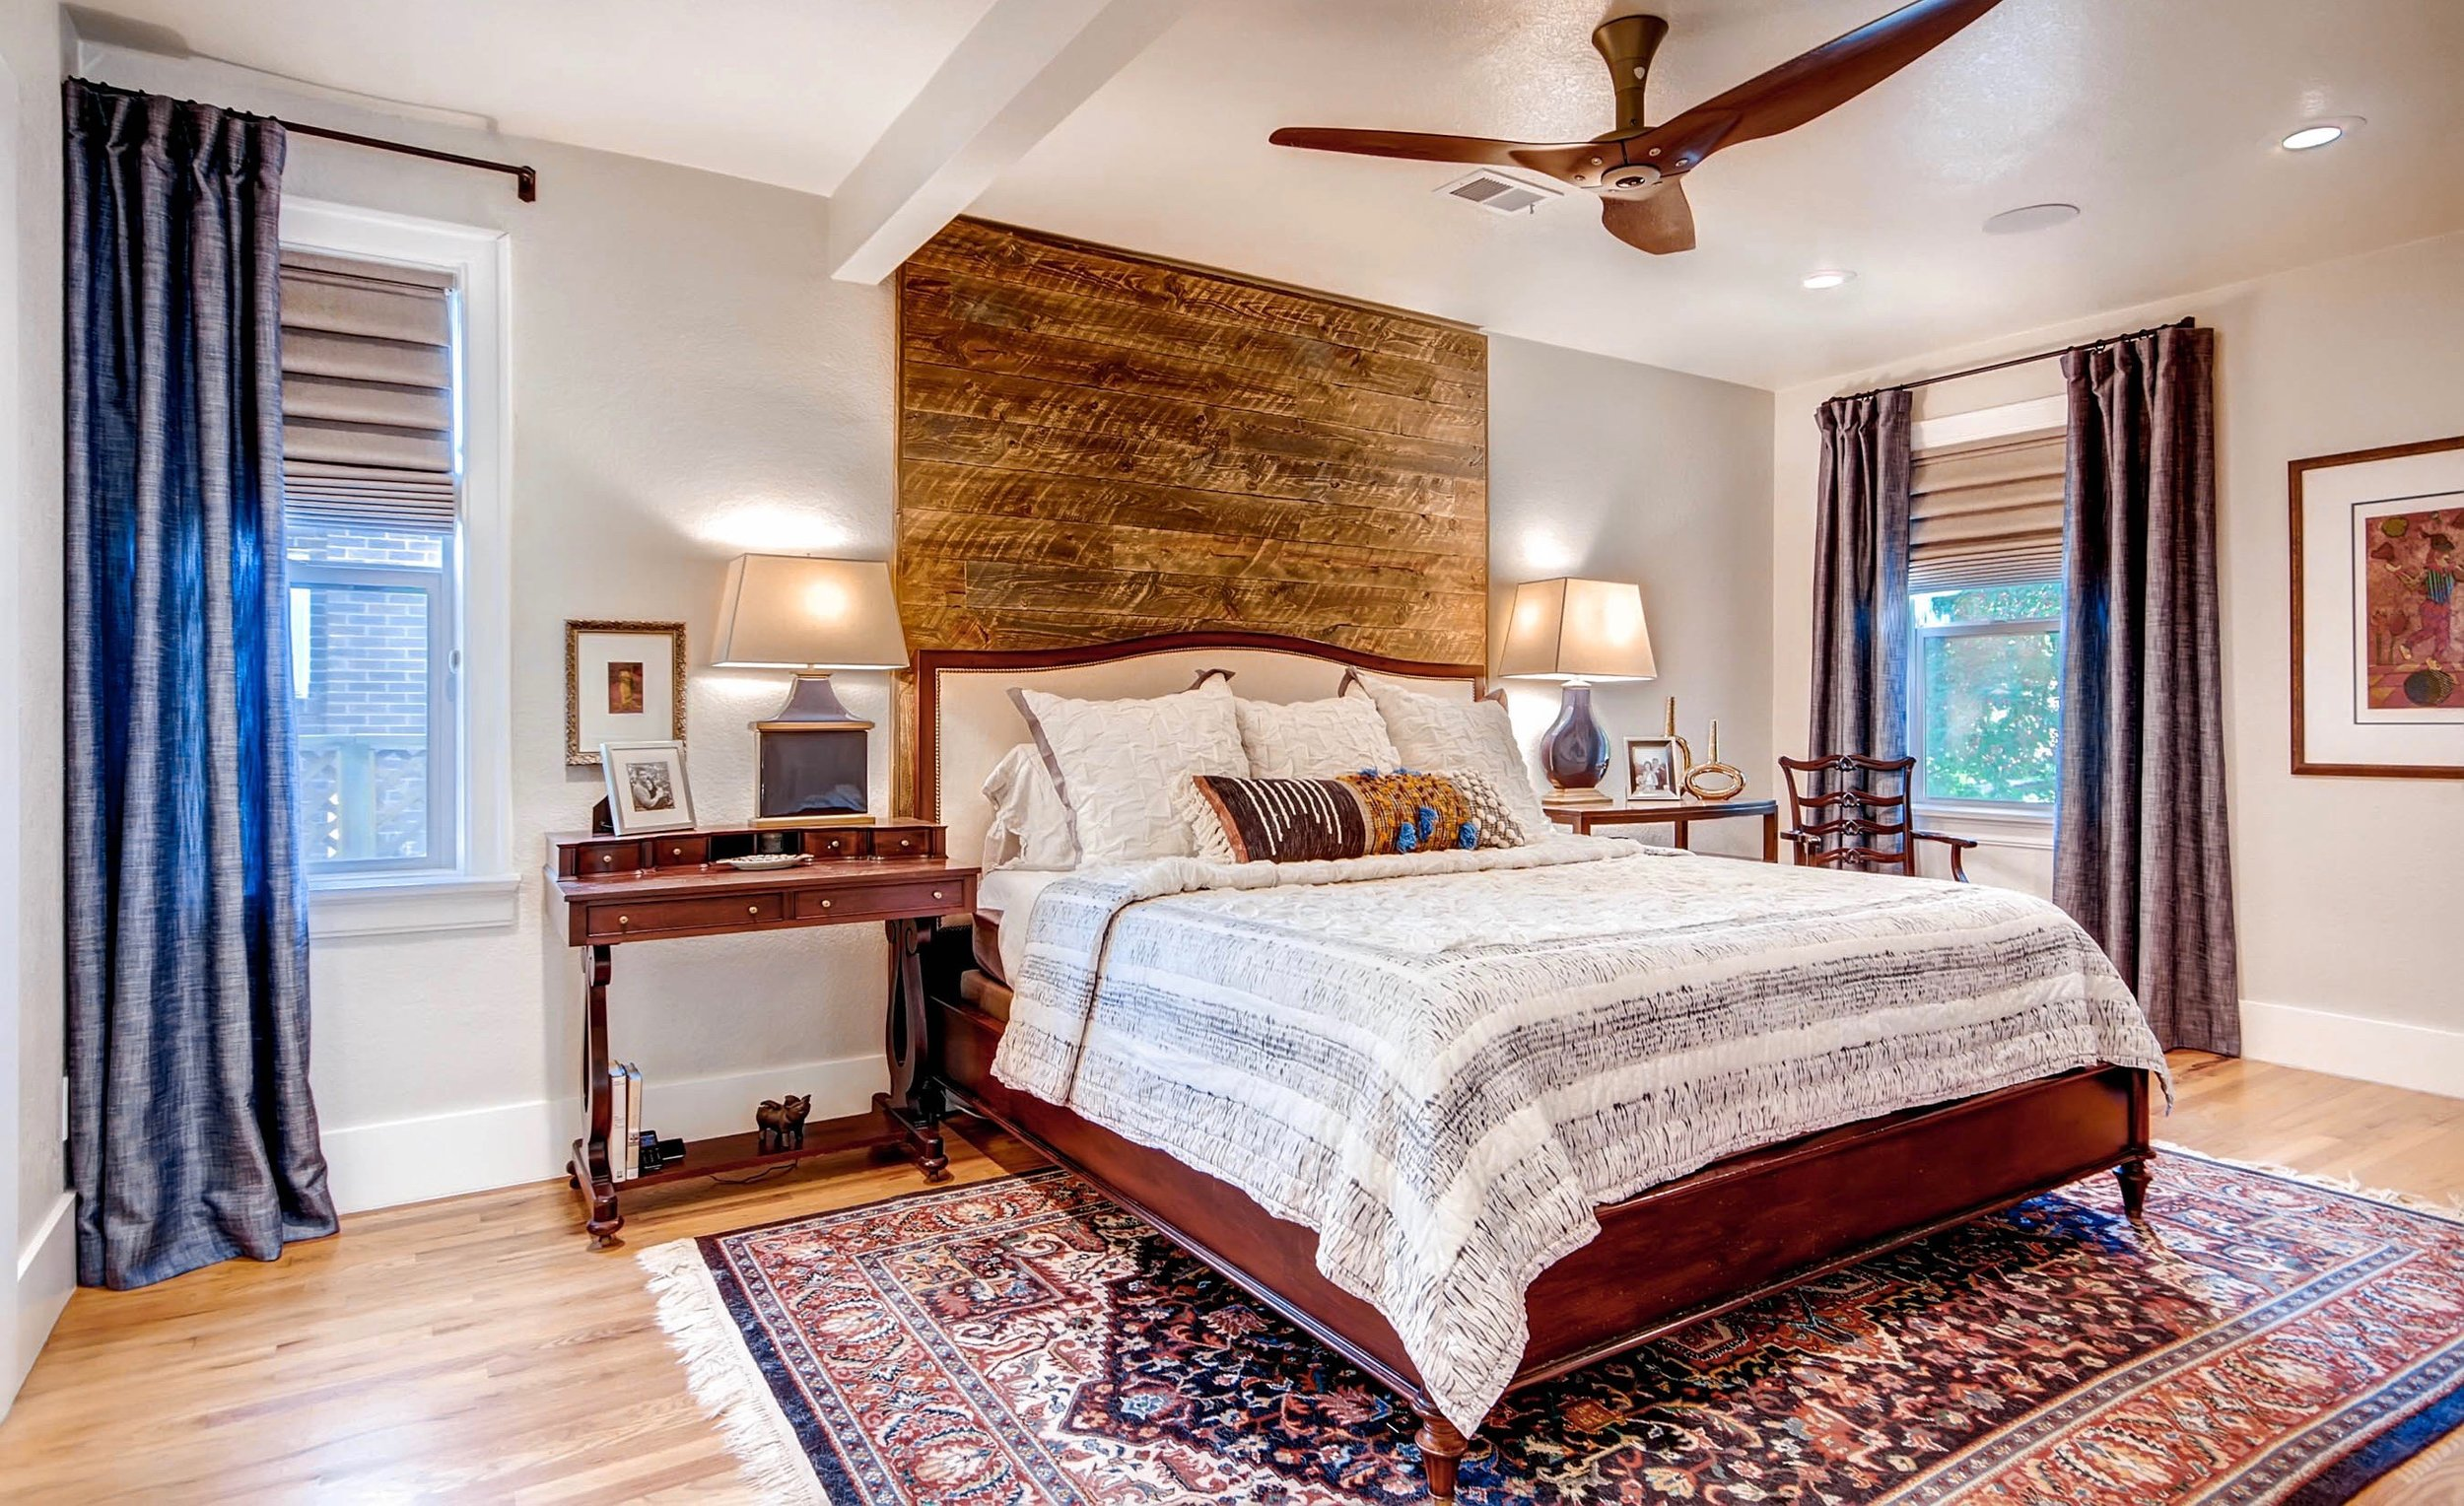 """A reclaimed, rustic-wood accent wall has dual purpose in this master bedroom -- it completely covers an unwanted window, and adds a chic focal point to the space. This is the """"Form Flirt Function"""" design approach in action."""